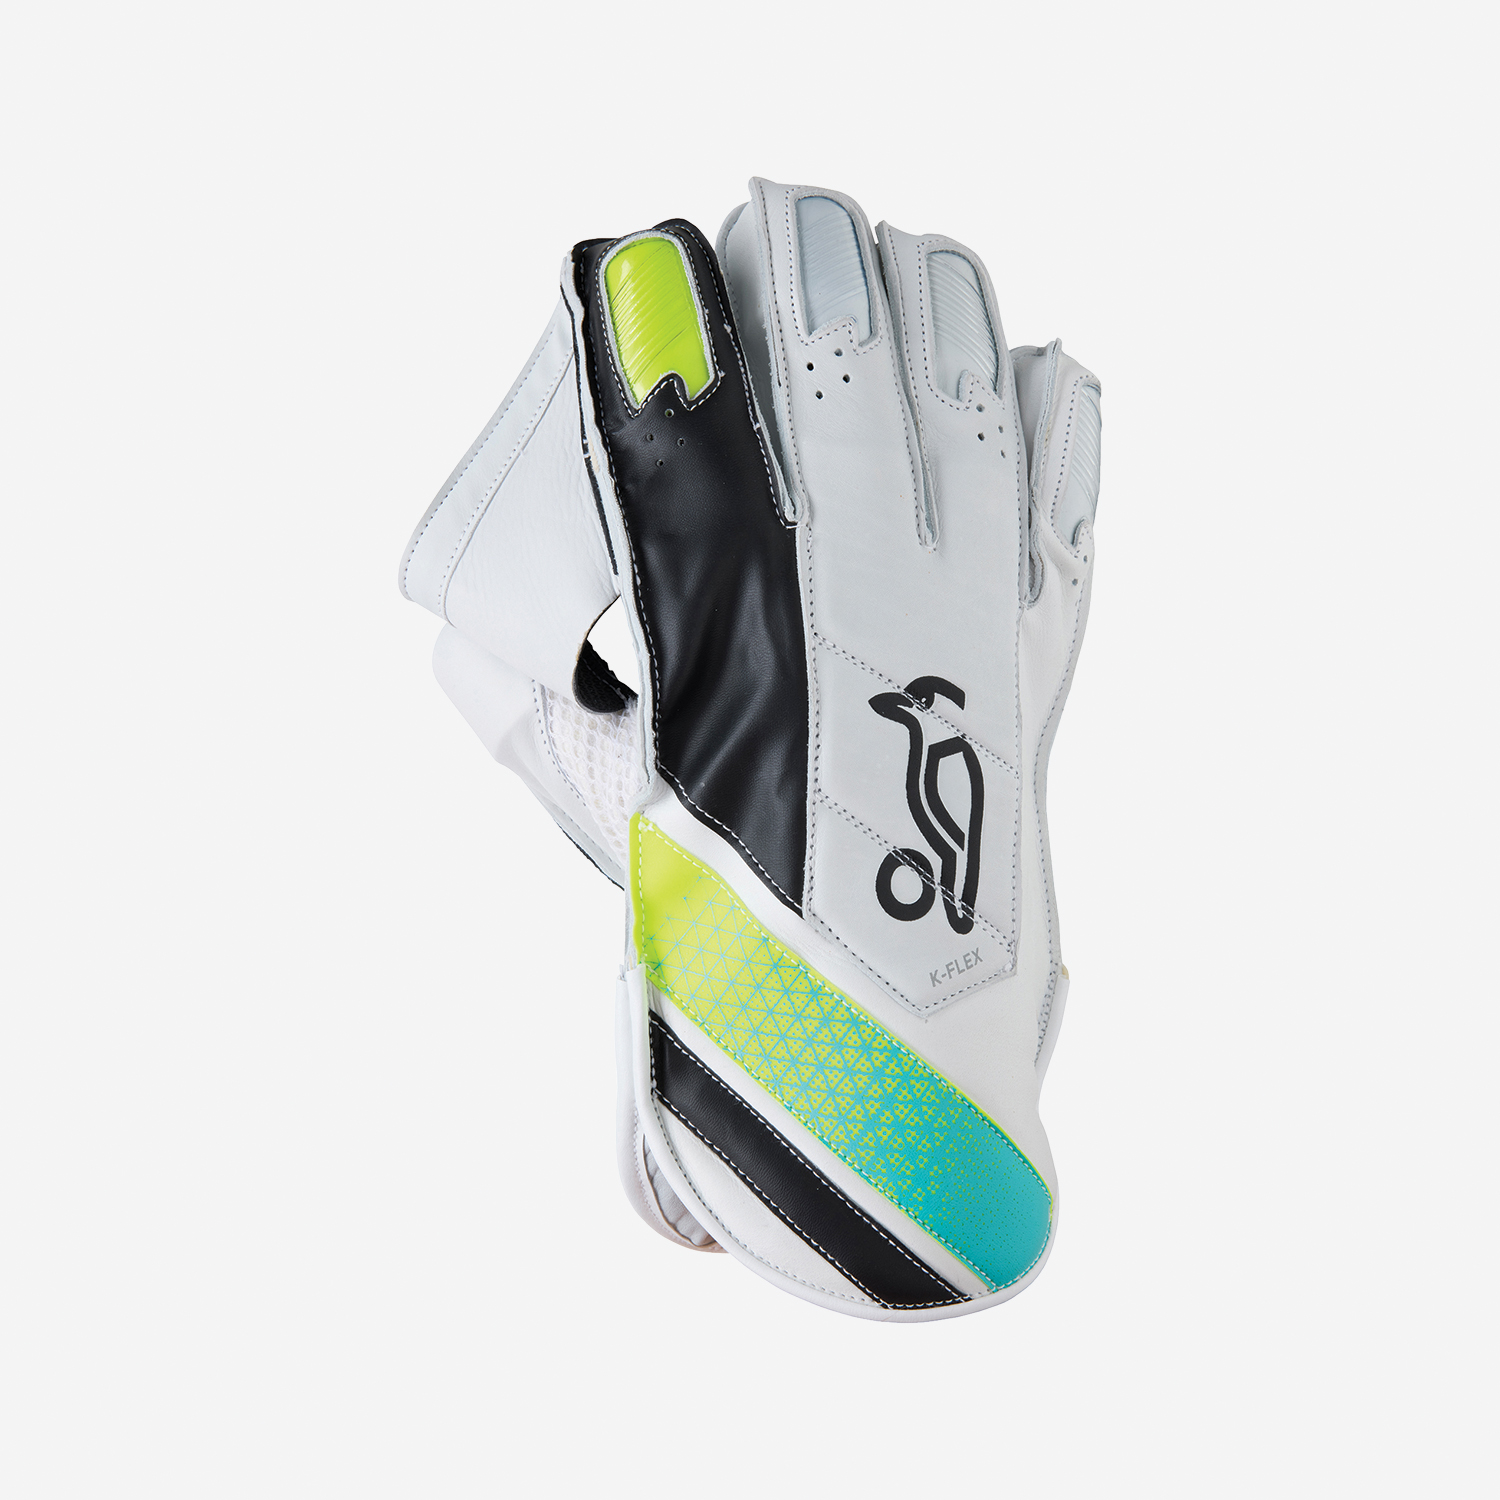 RAPID PRO PLAYERS WICKET KEEPING GLOVES